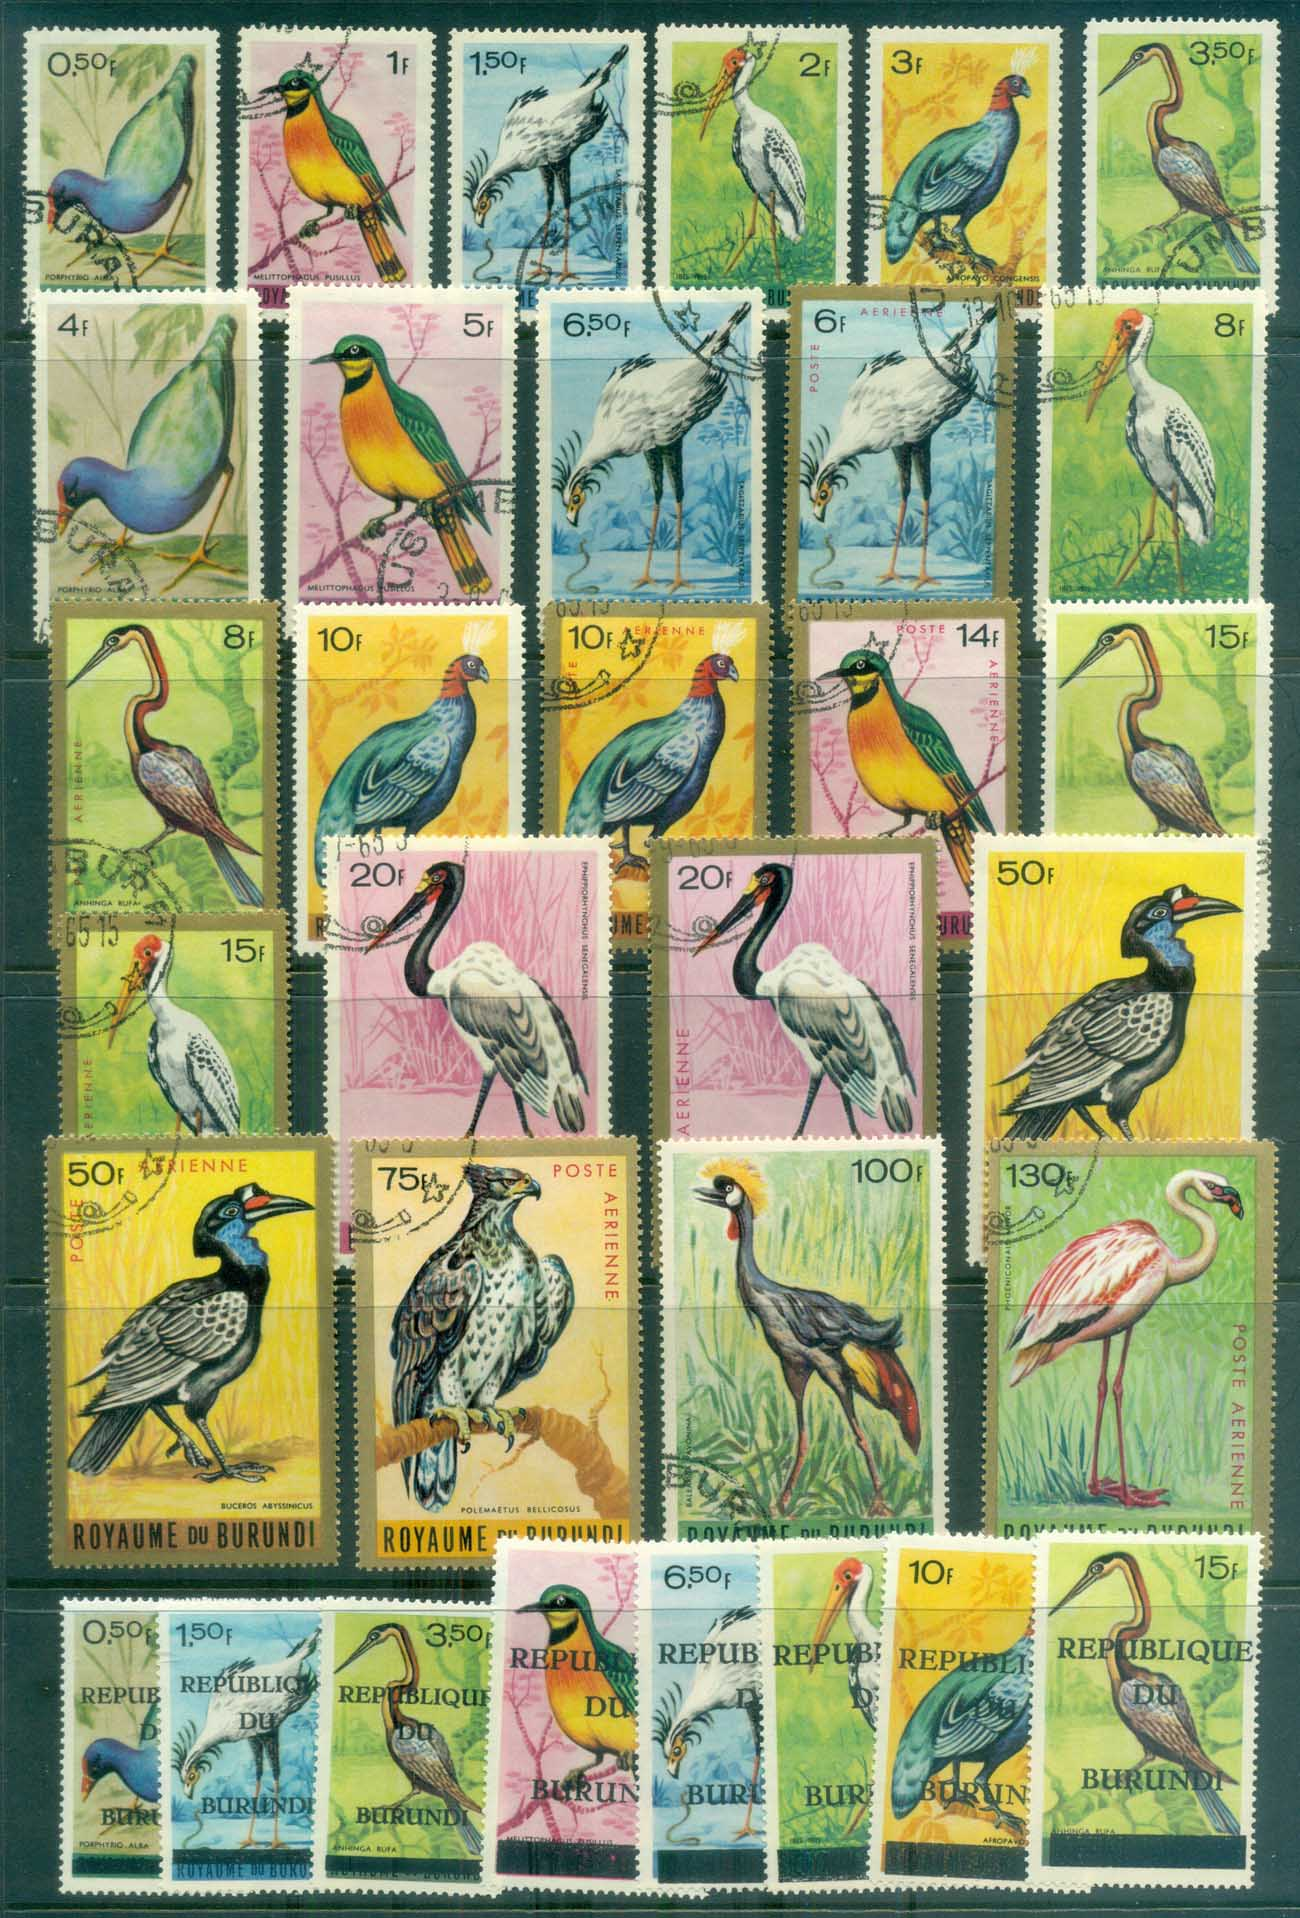 Burundi 1965 on Pictorials, Birds Asst inc Opts CTO